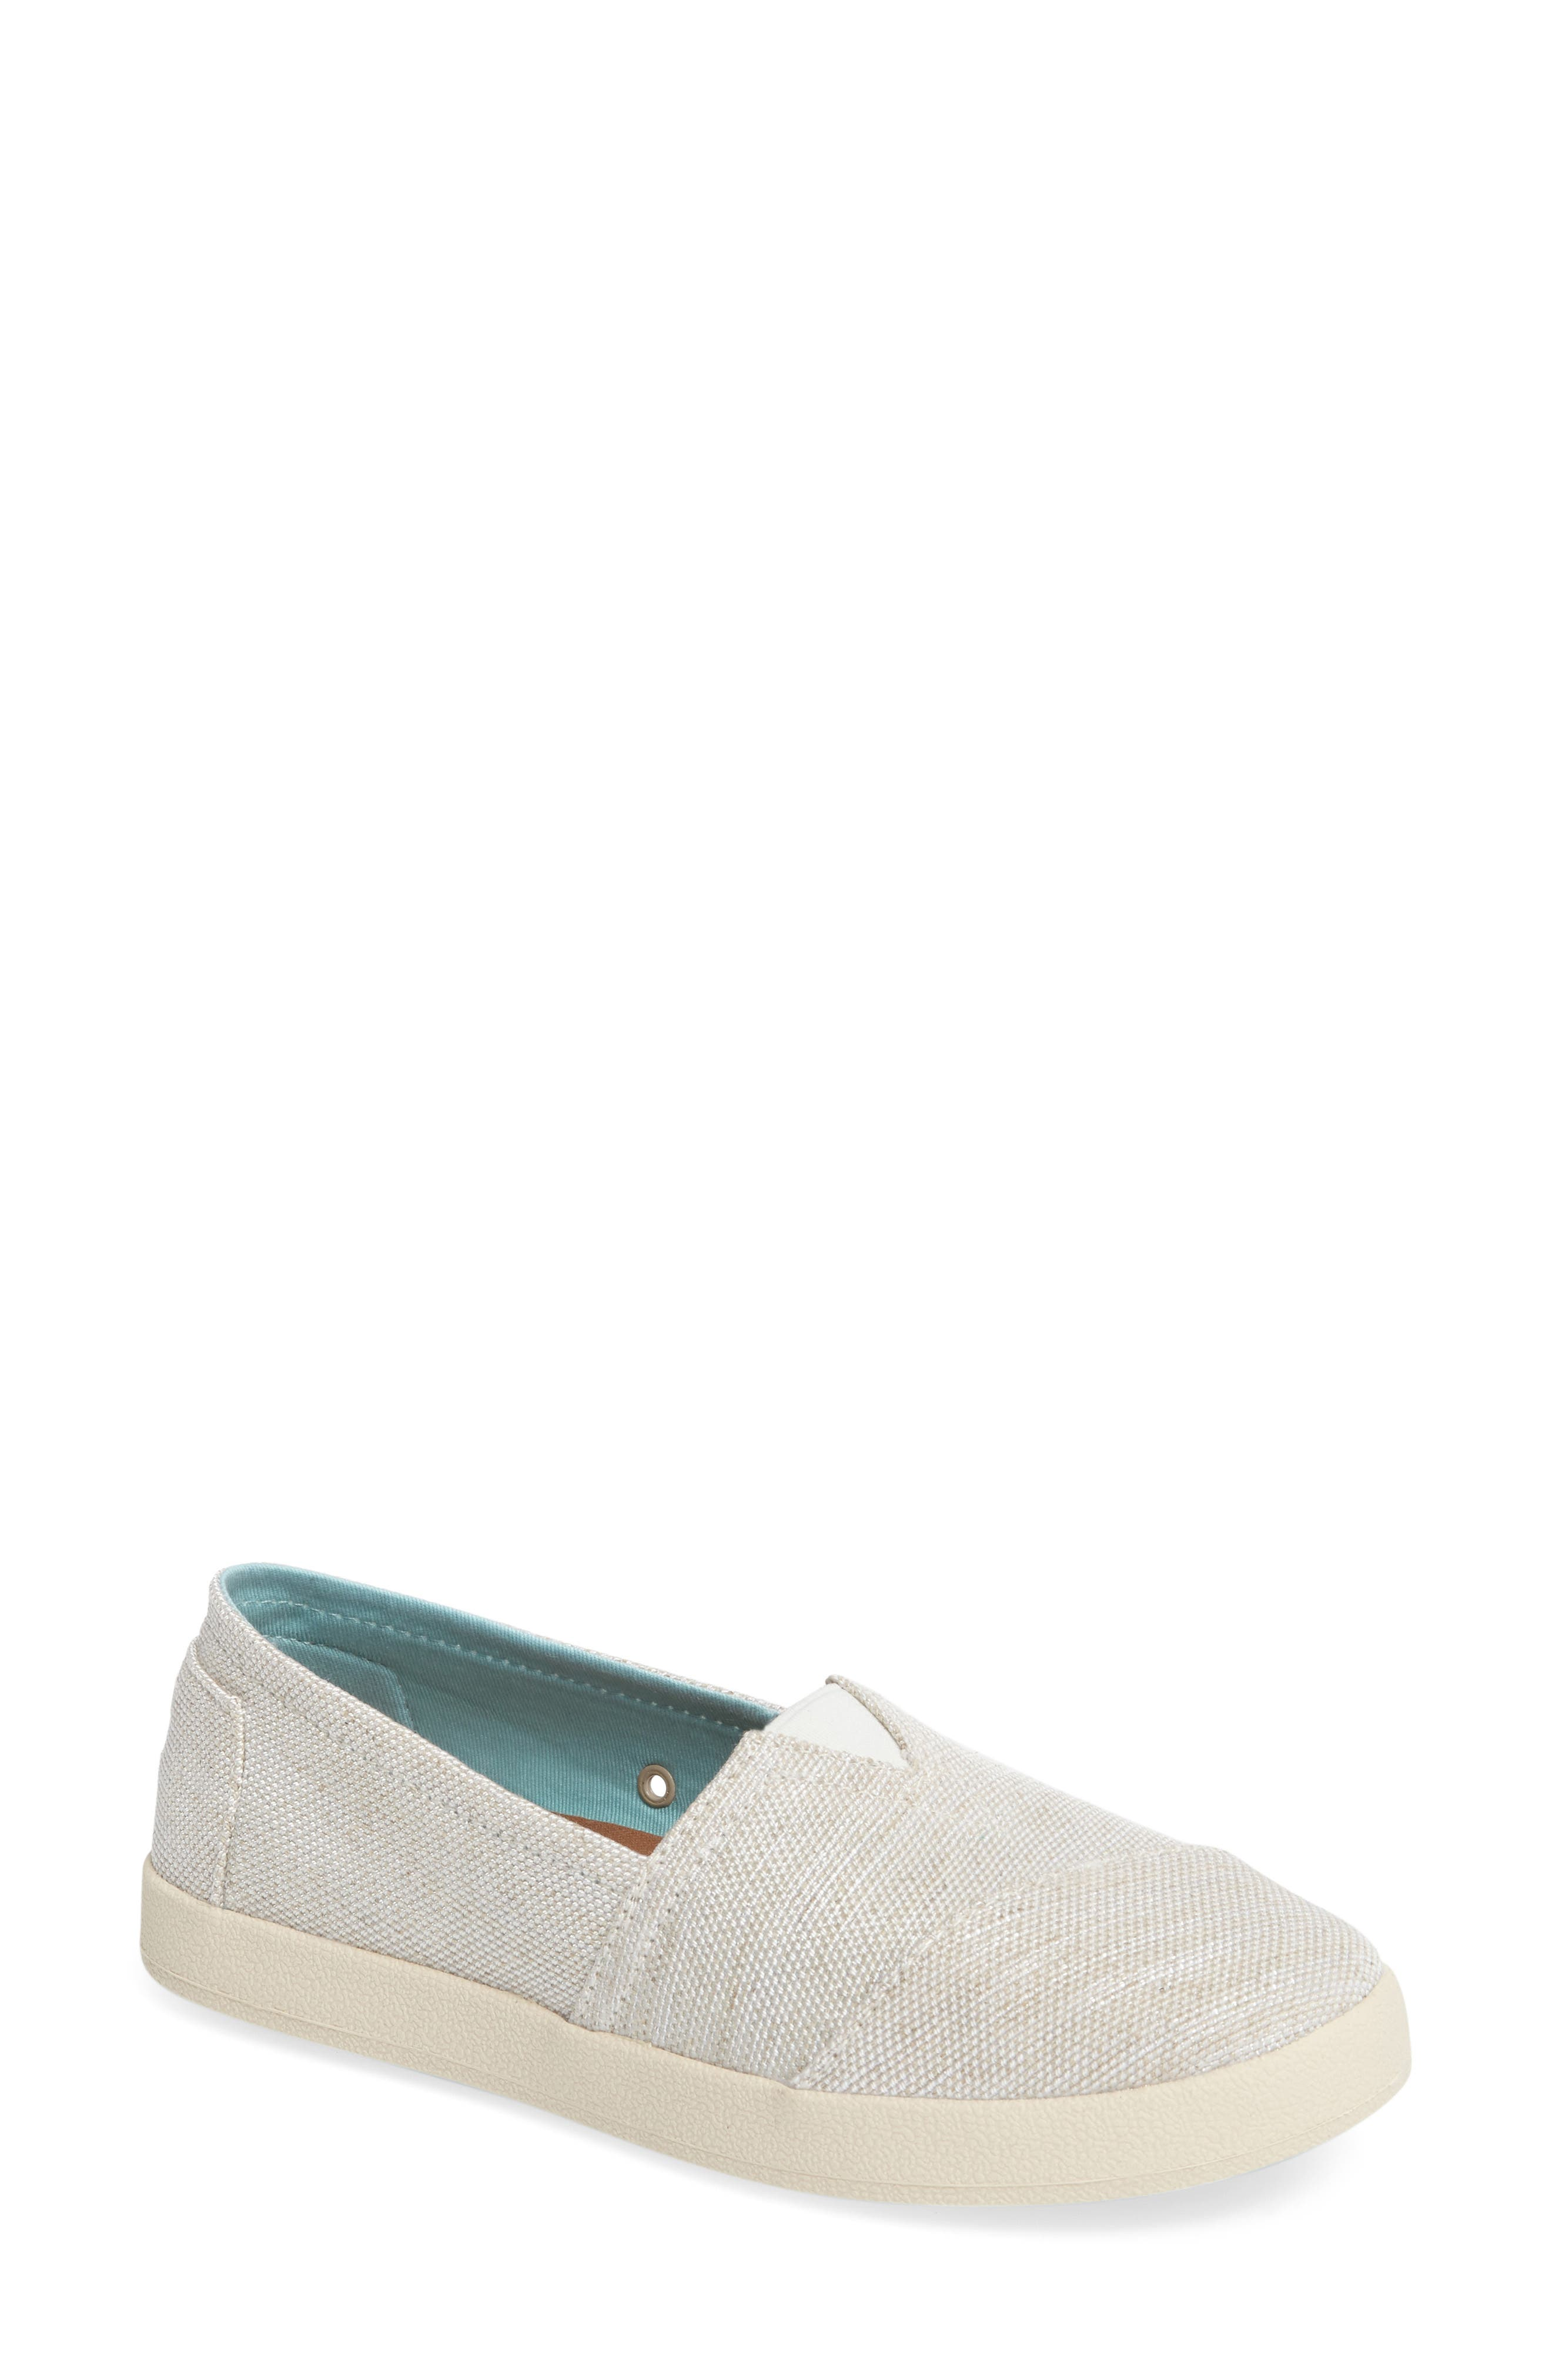 TOMS TOM Avalon Slip-On